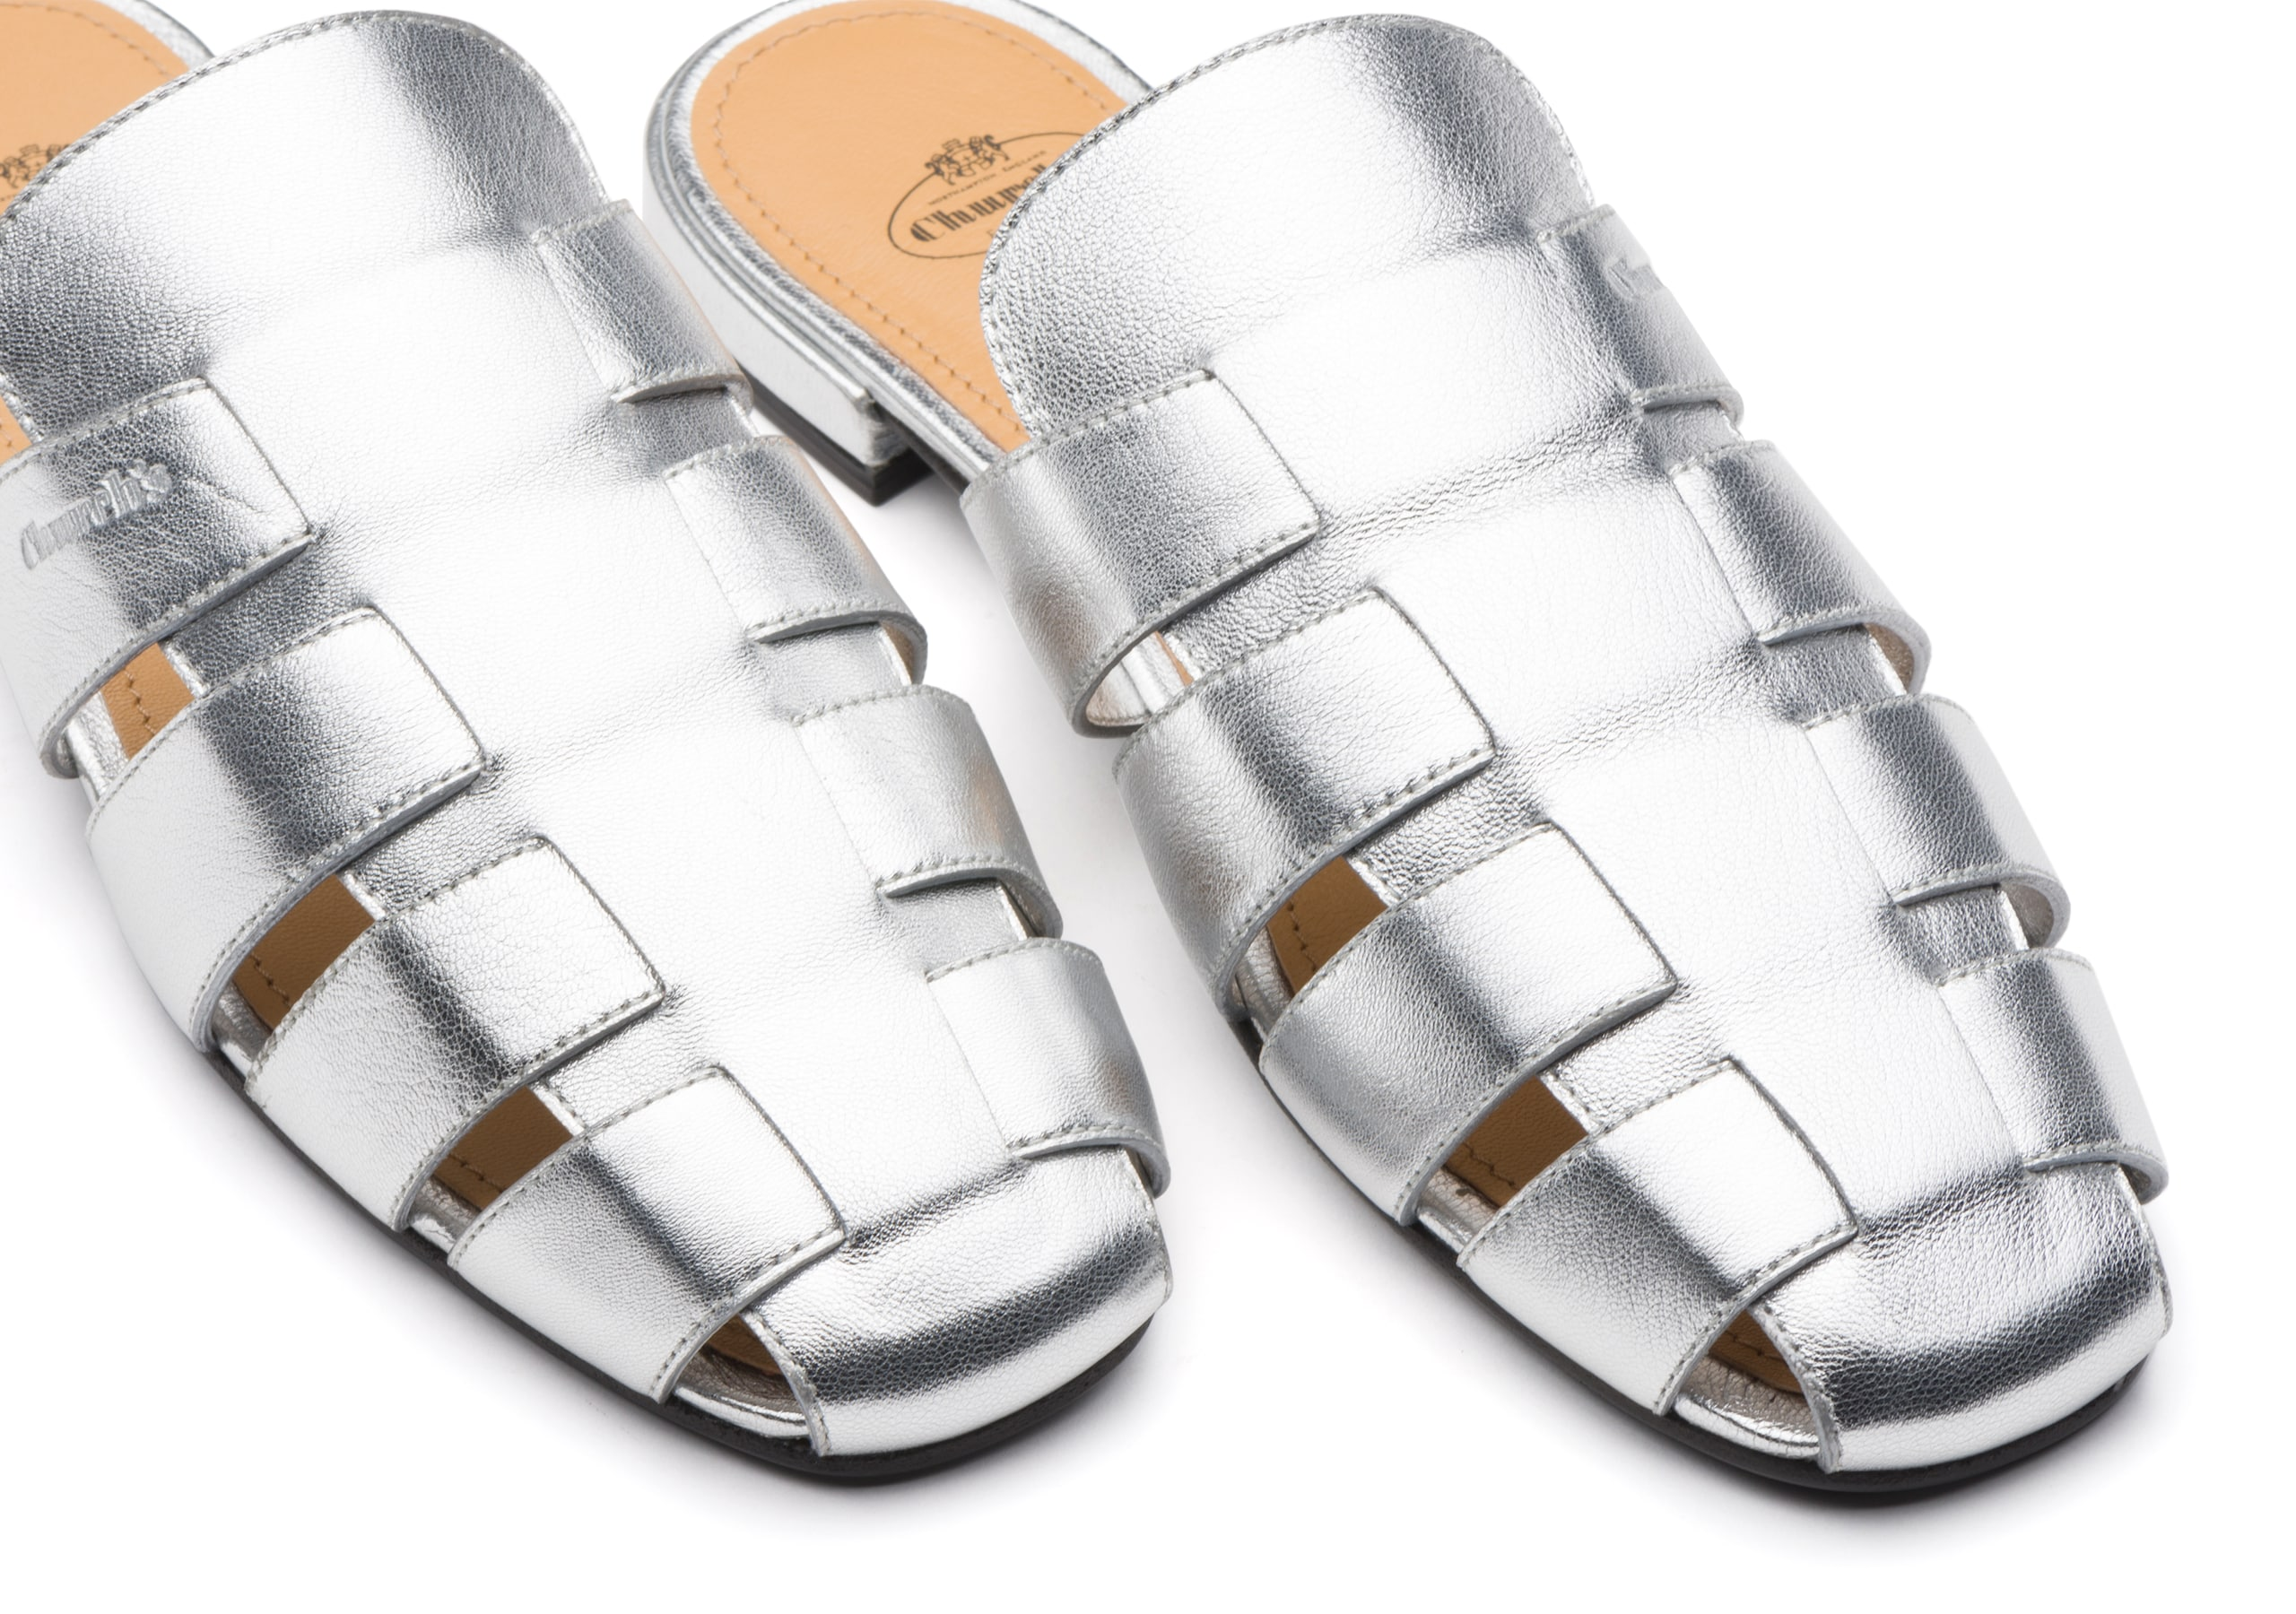 Becky Church's Nappa Leather Mule Sandal Gold/silver